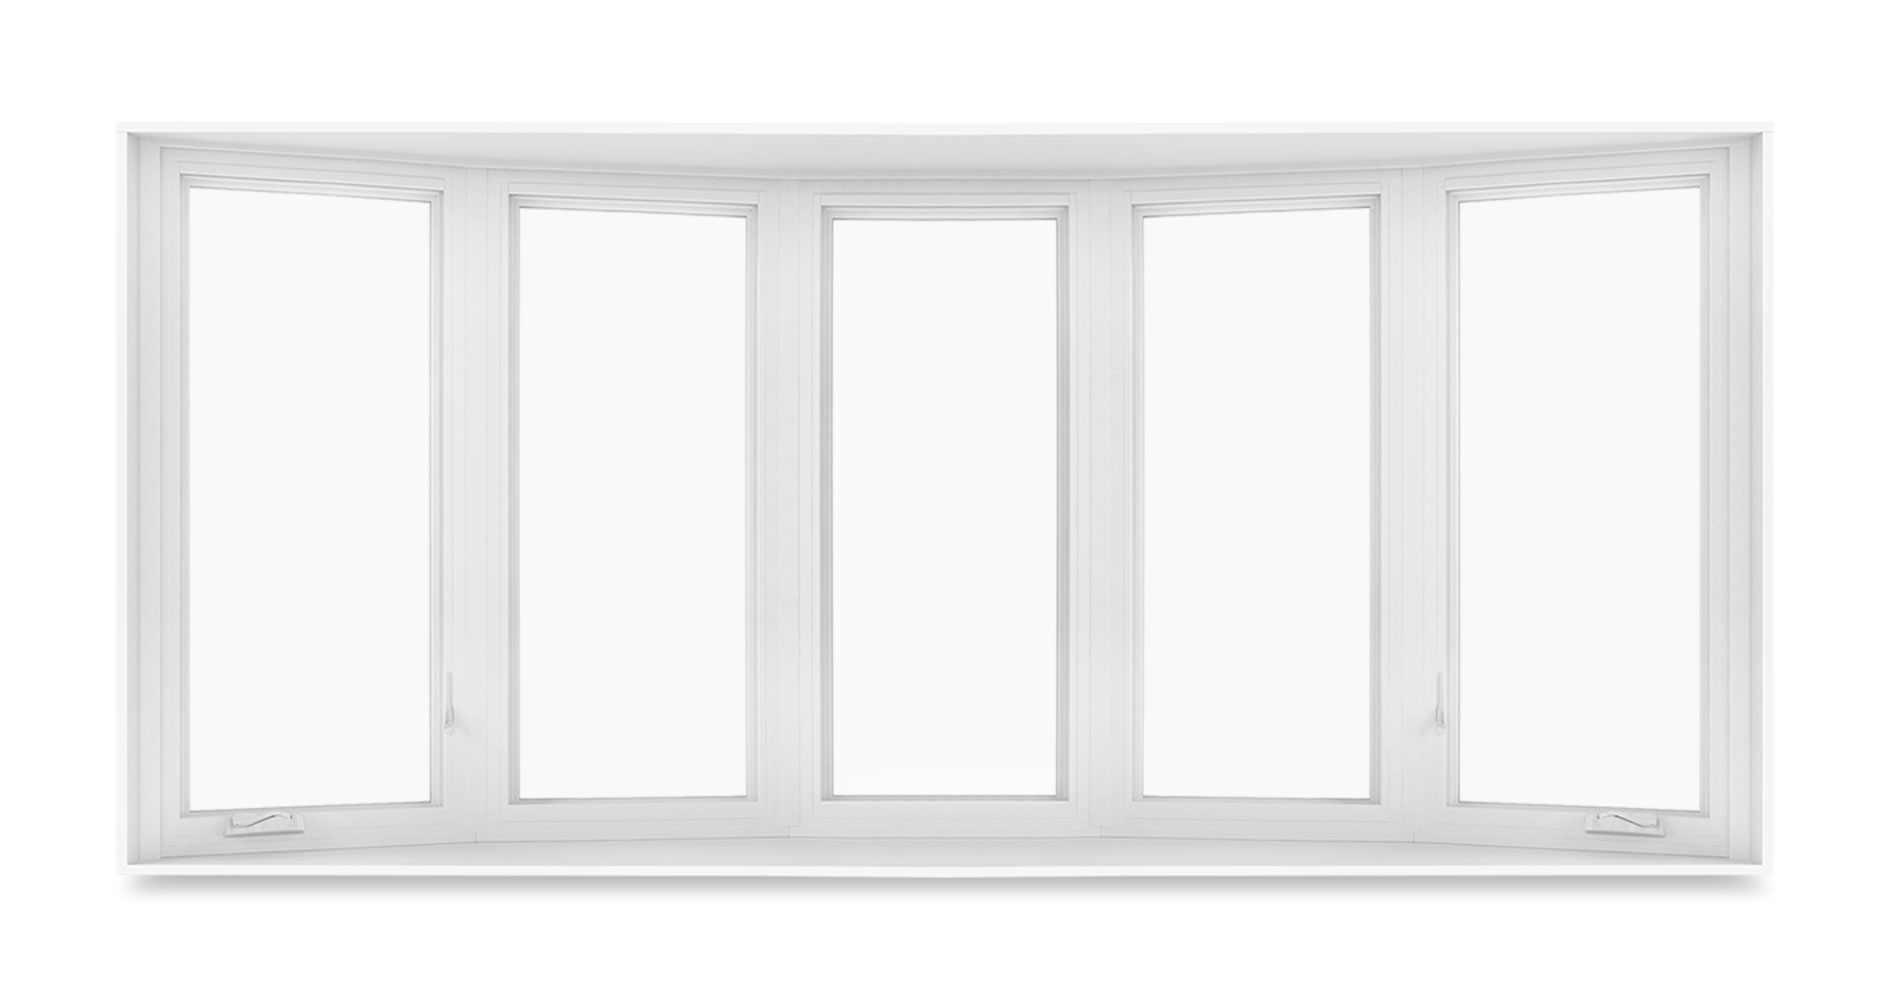 Bow window with 5-wide casements